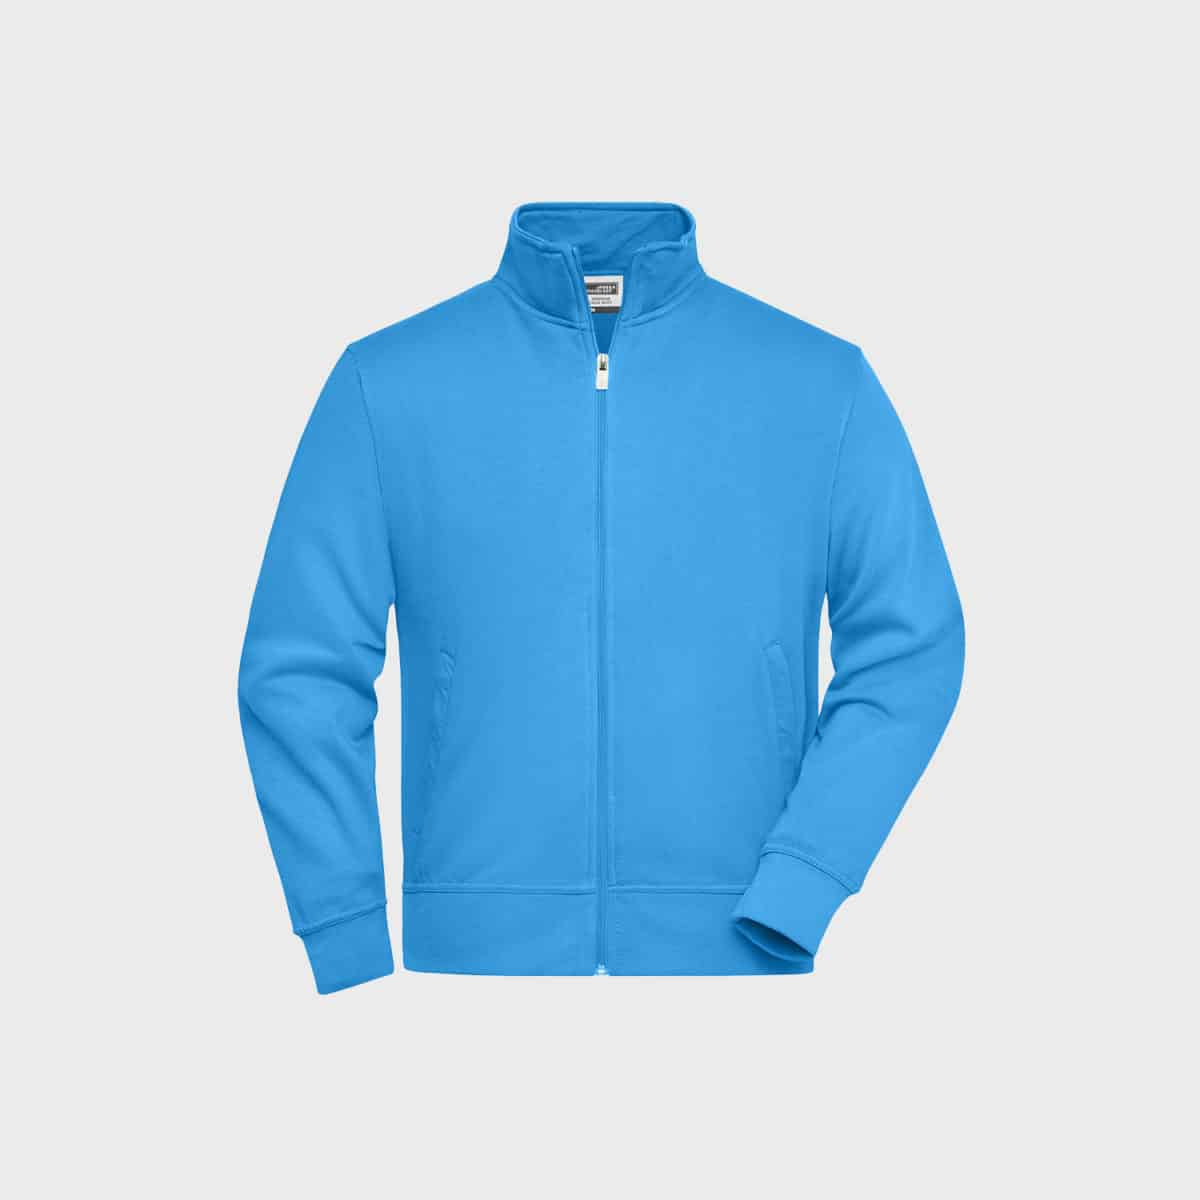 sweat-jacke-workwear-unisex-aqua-kaufen-besticken_stickmanufaktur